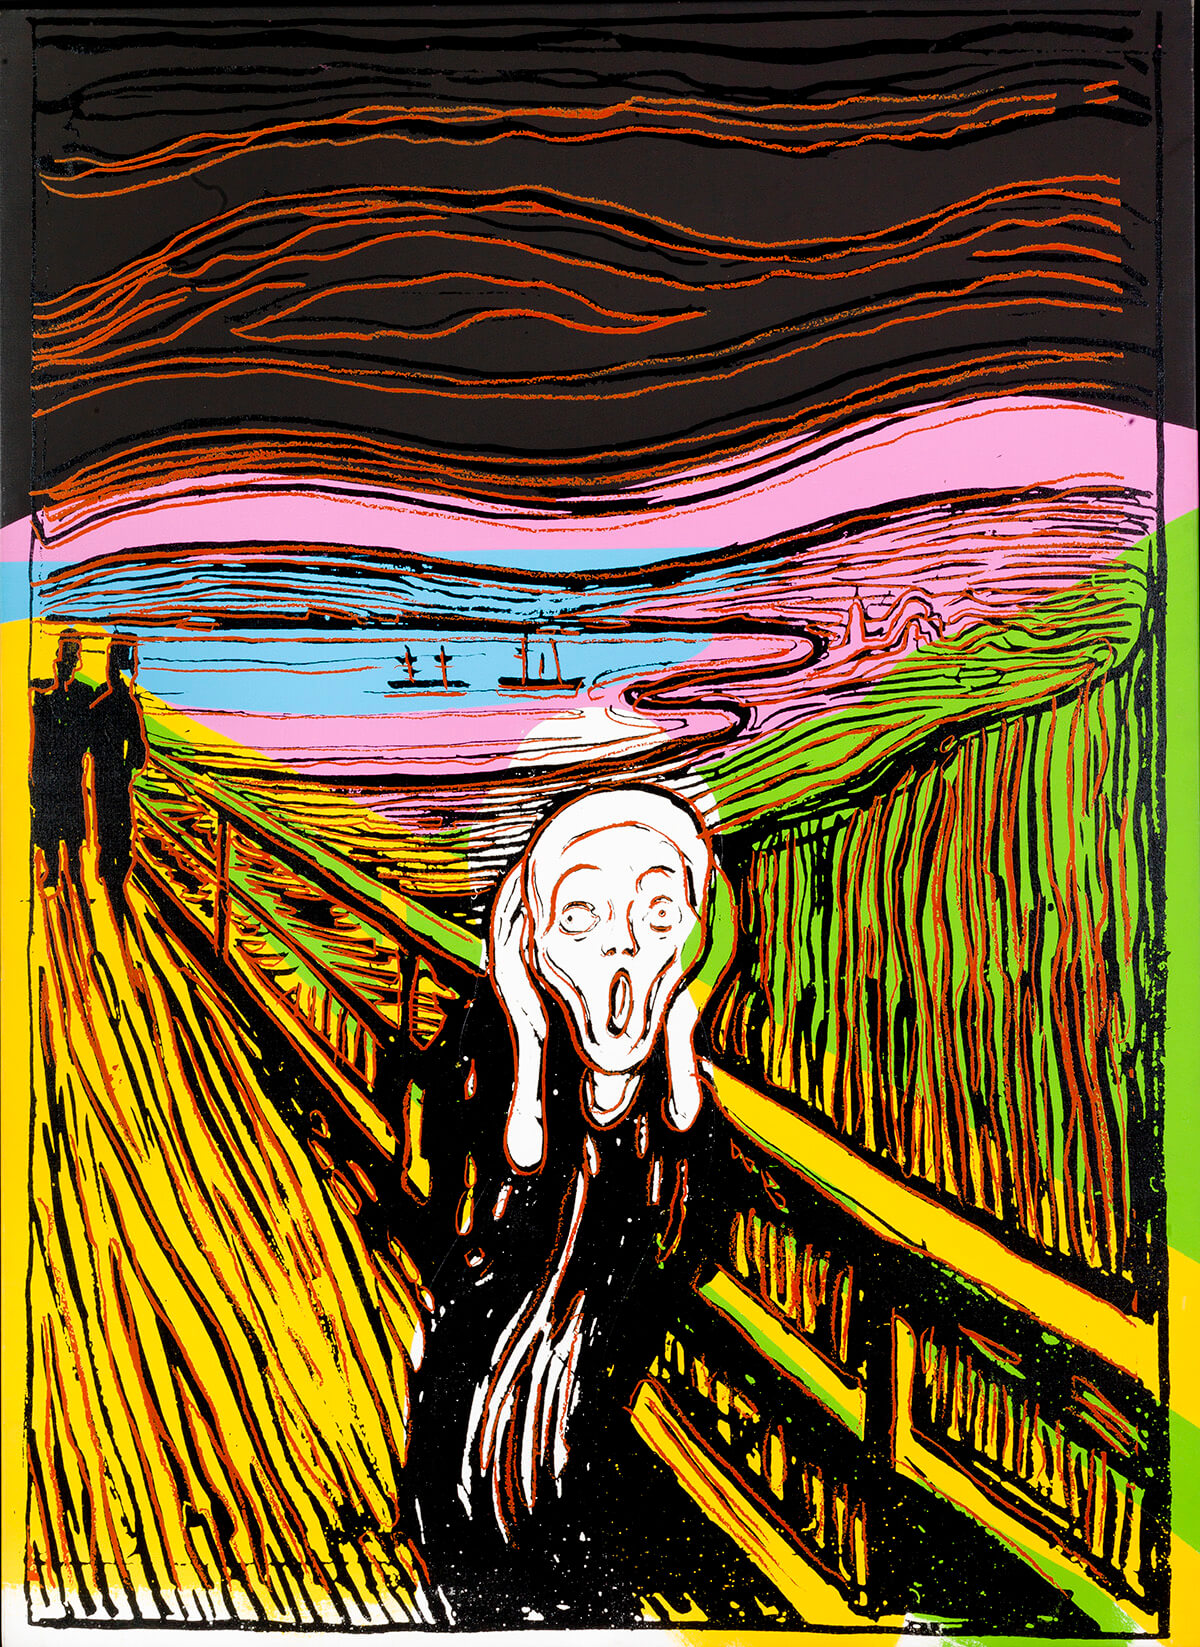 Andy Warhol's colourful print interpretation of the iconic painting by Edward Munch, The Scream